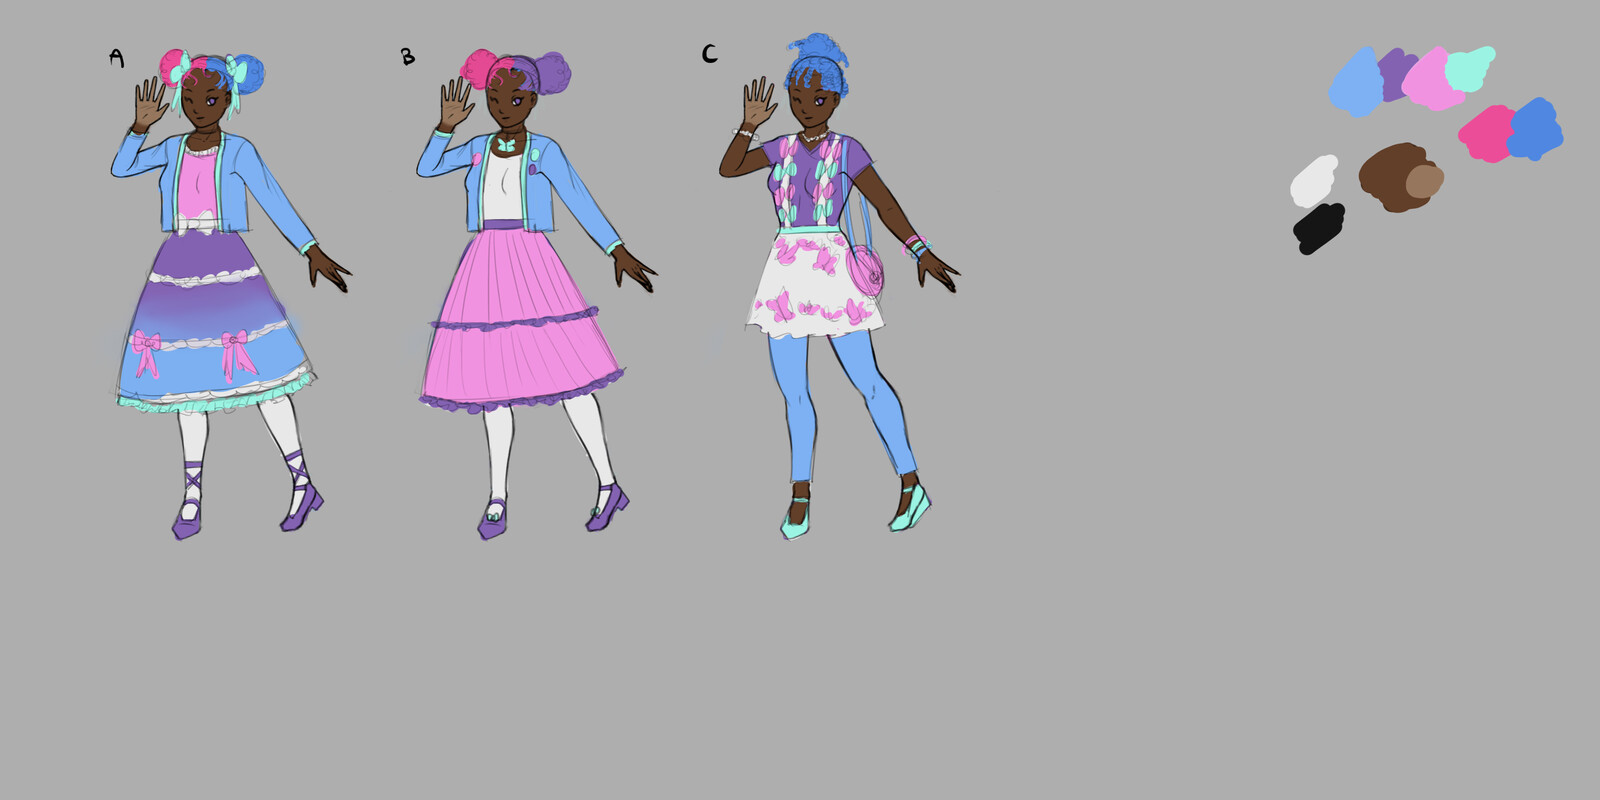 Second pass - narrowing down outfit, with color placement